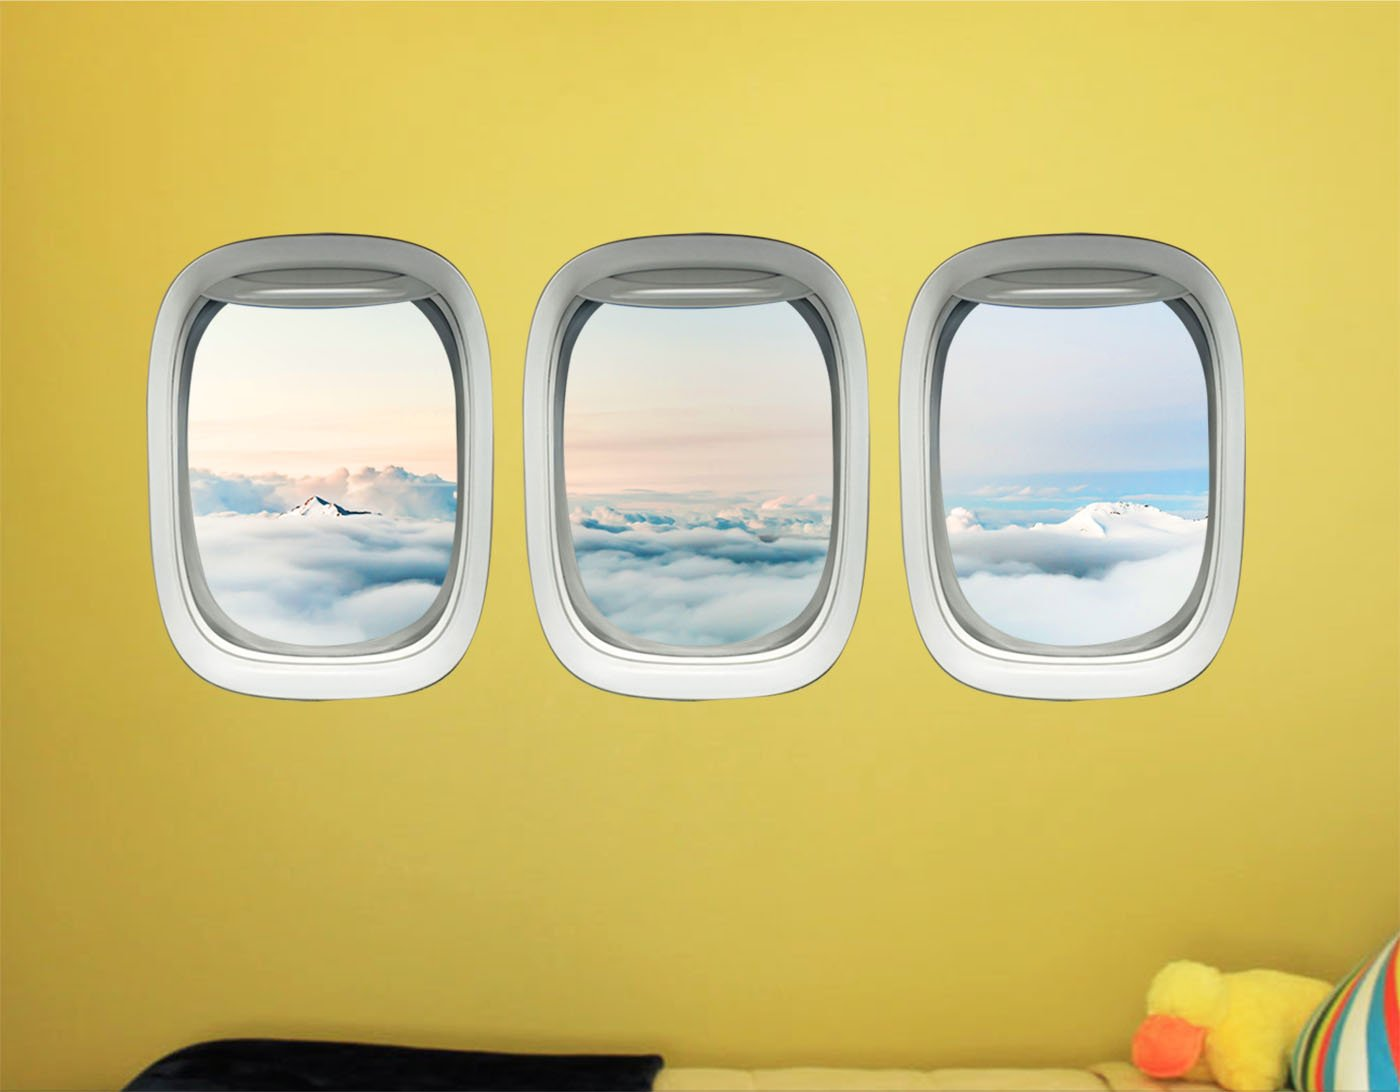 Airplane Wall Decals For Kids Rooms - Aviation Wall Stickers, Plane Window Clings -PPW36 - VWAQ Vinyl Wall Art Quotes and Prints